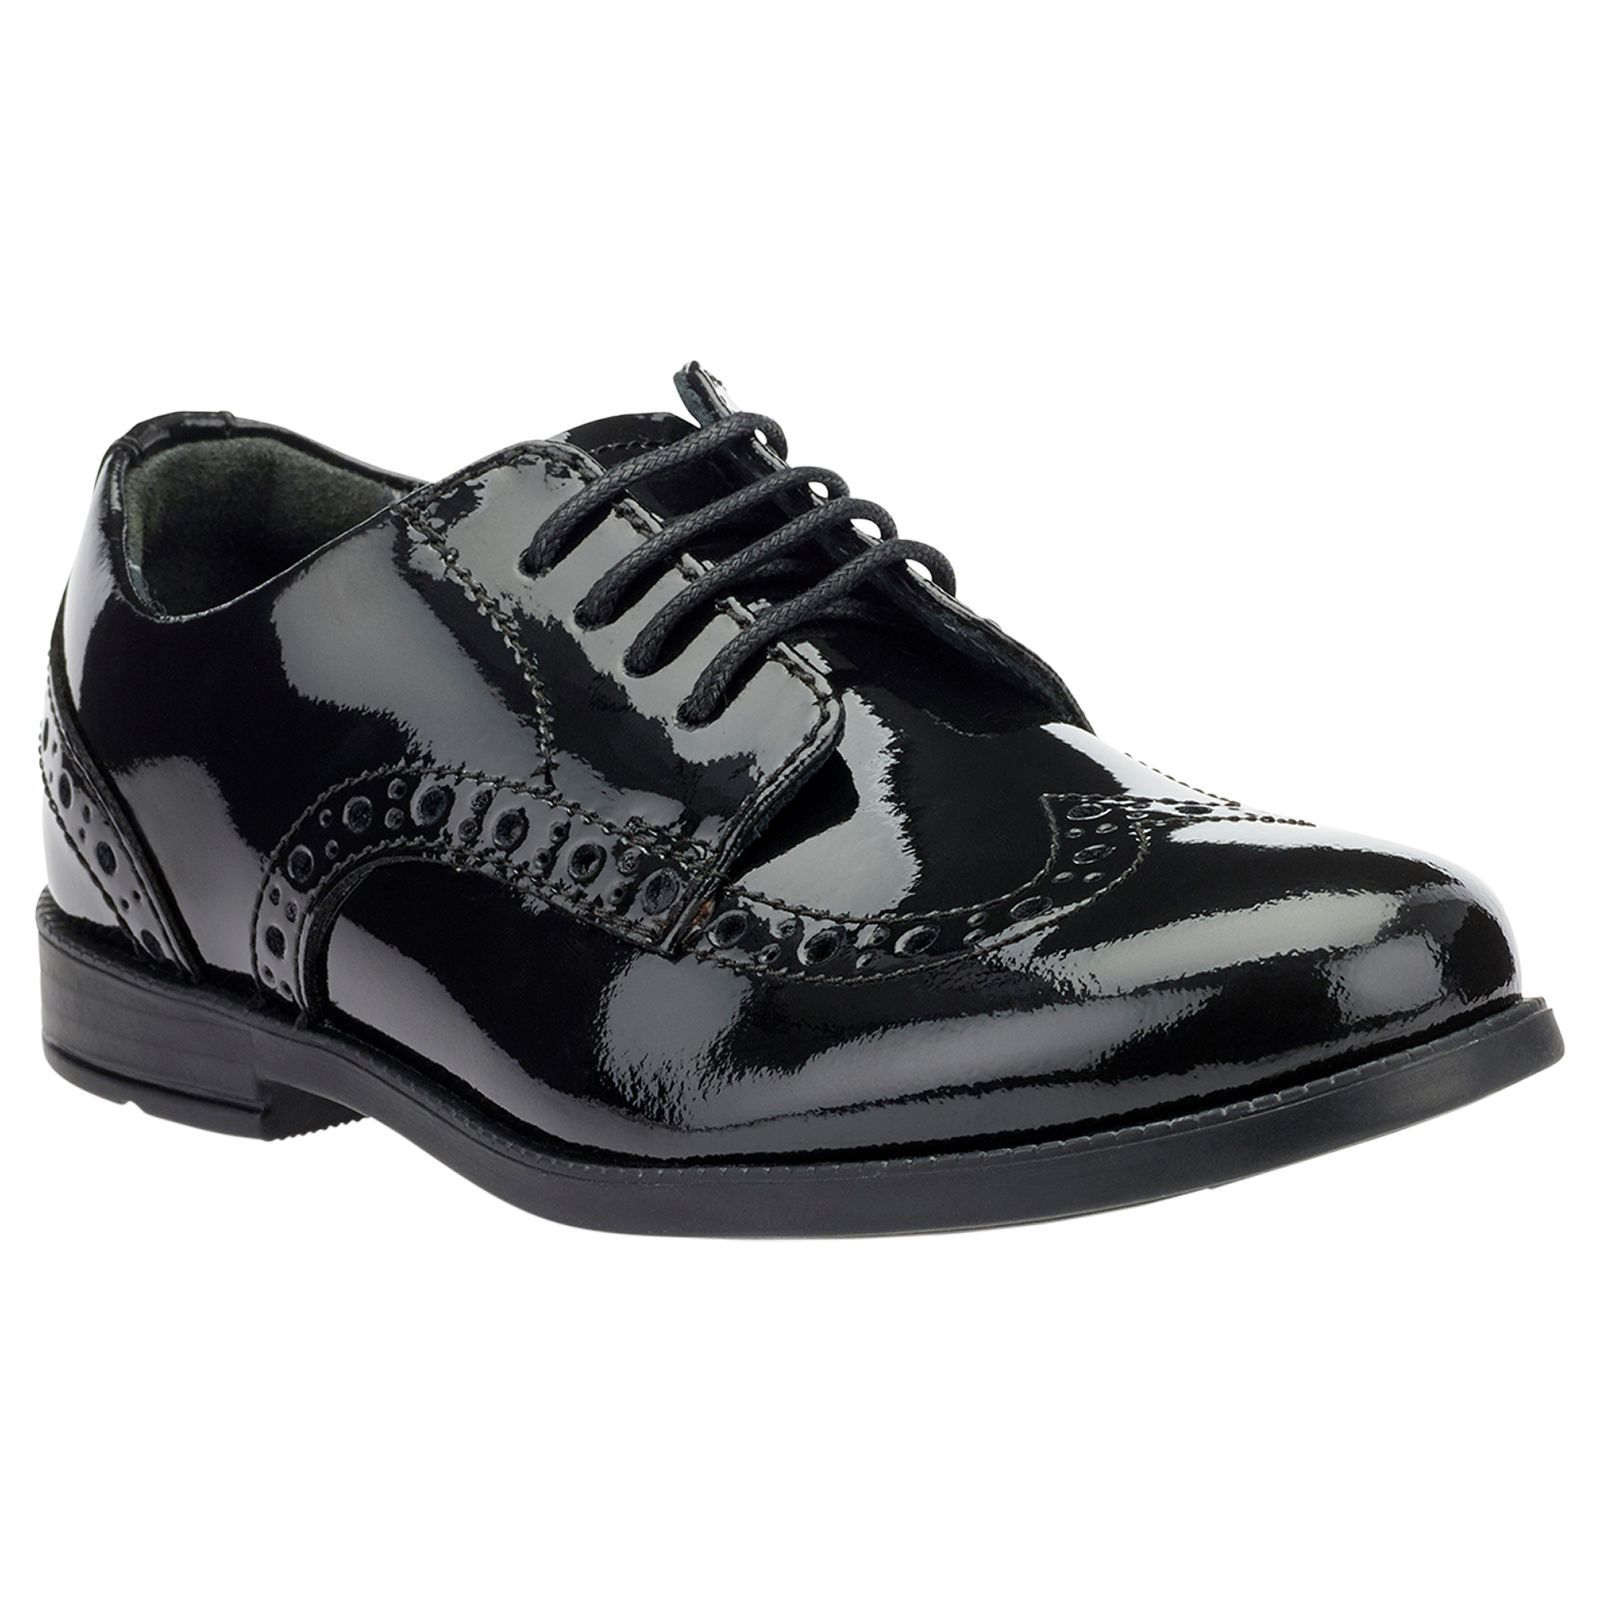 Leather brogues, Childrens shoes, Brogues